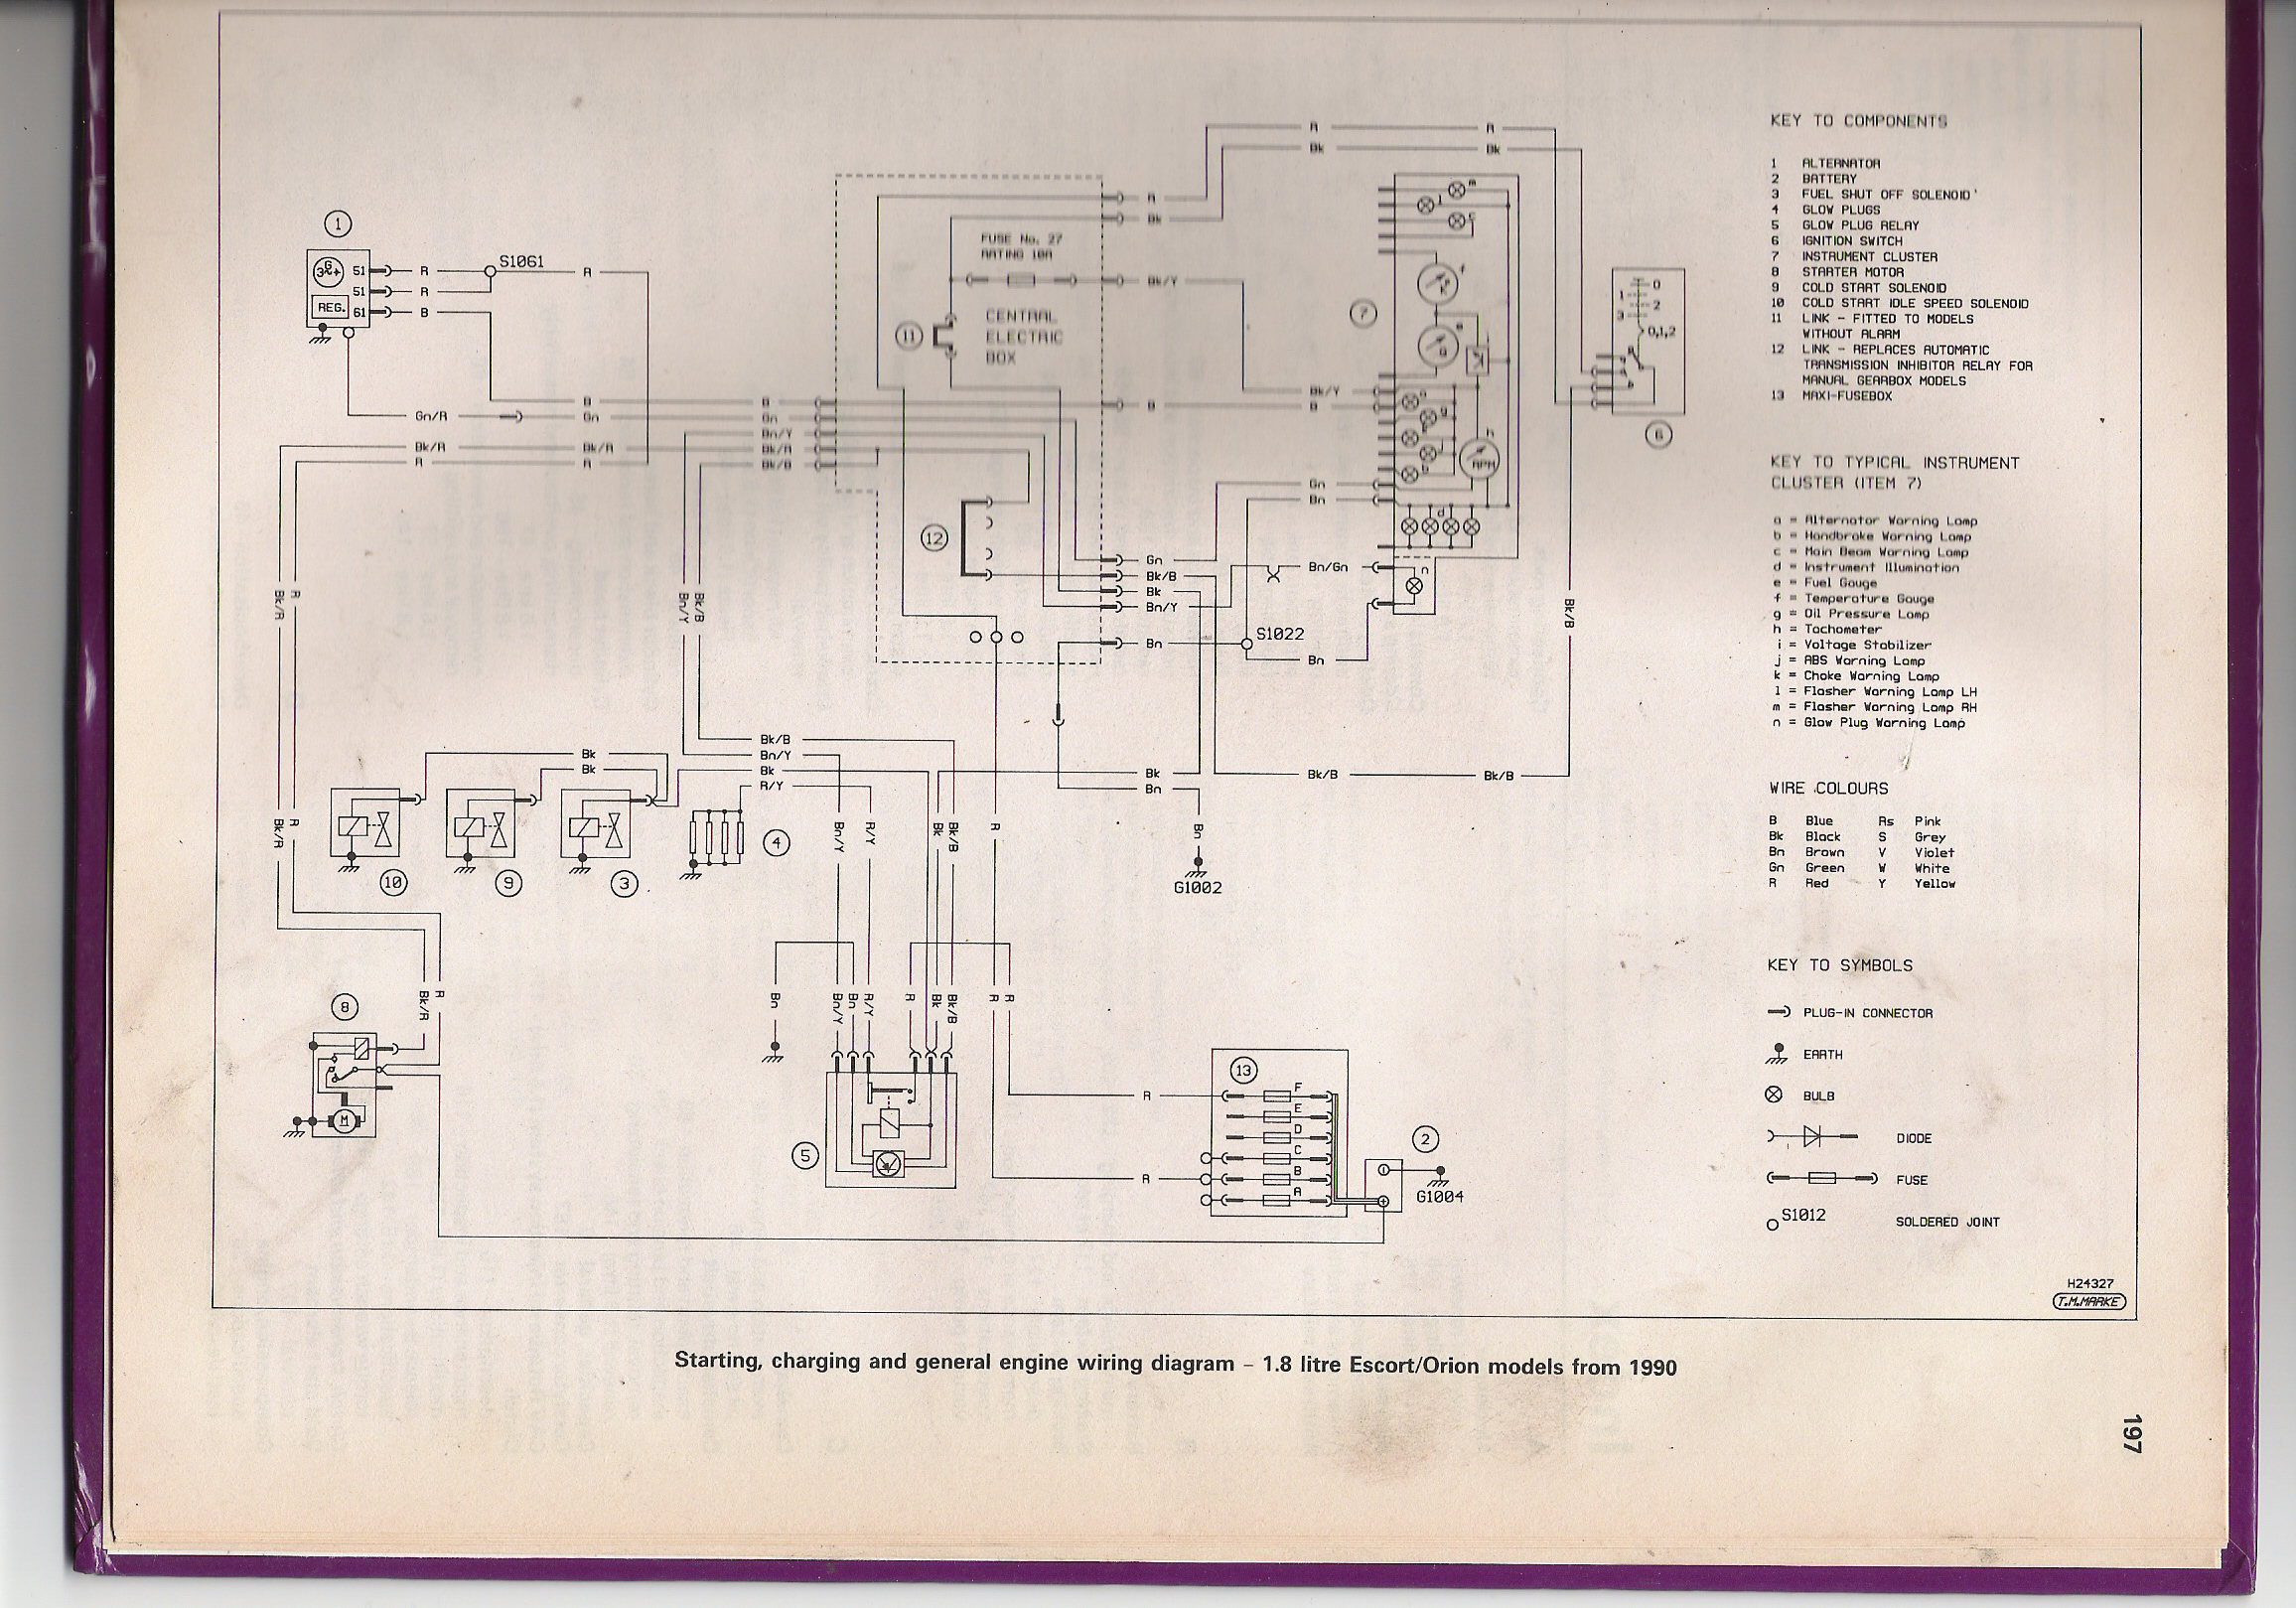 fordwiringdl mk4 wiring diagram wiring diagram for mk4 jetta power seats escort mk1 wiring diagram at honlapkeszites.co